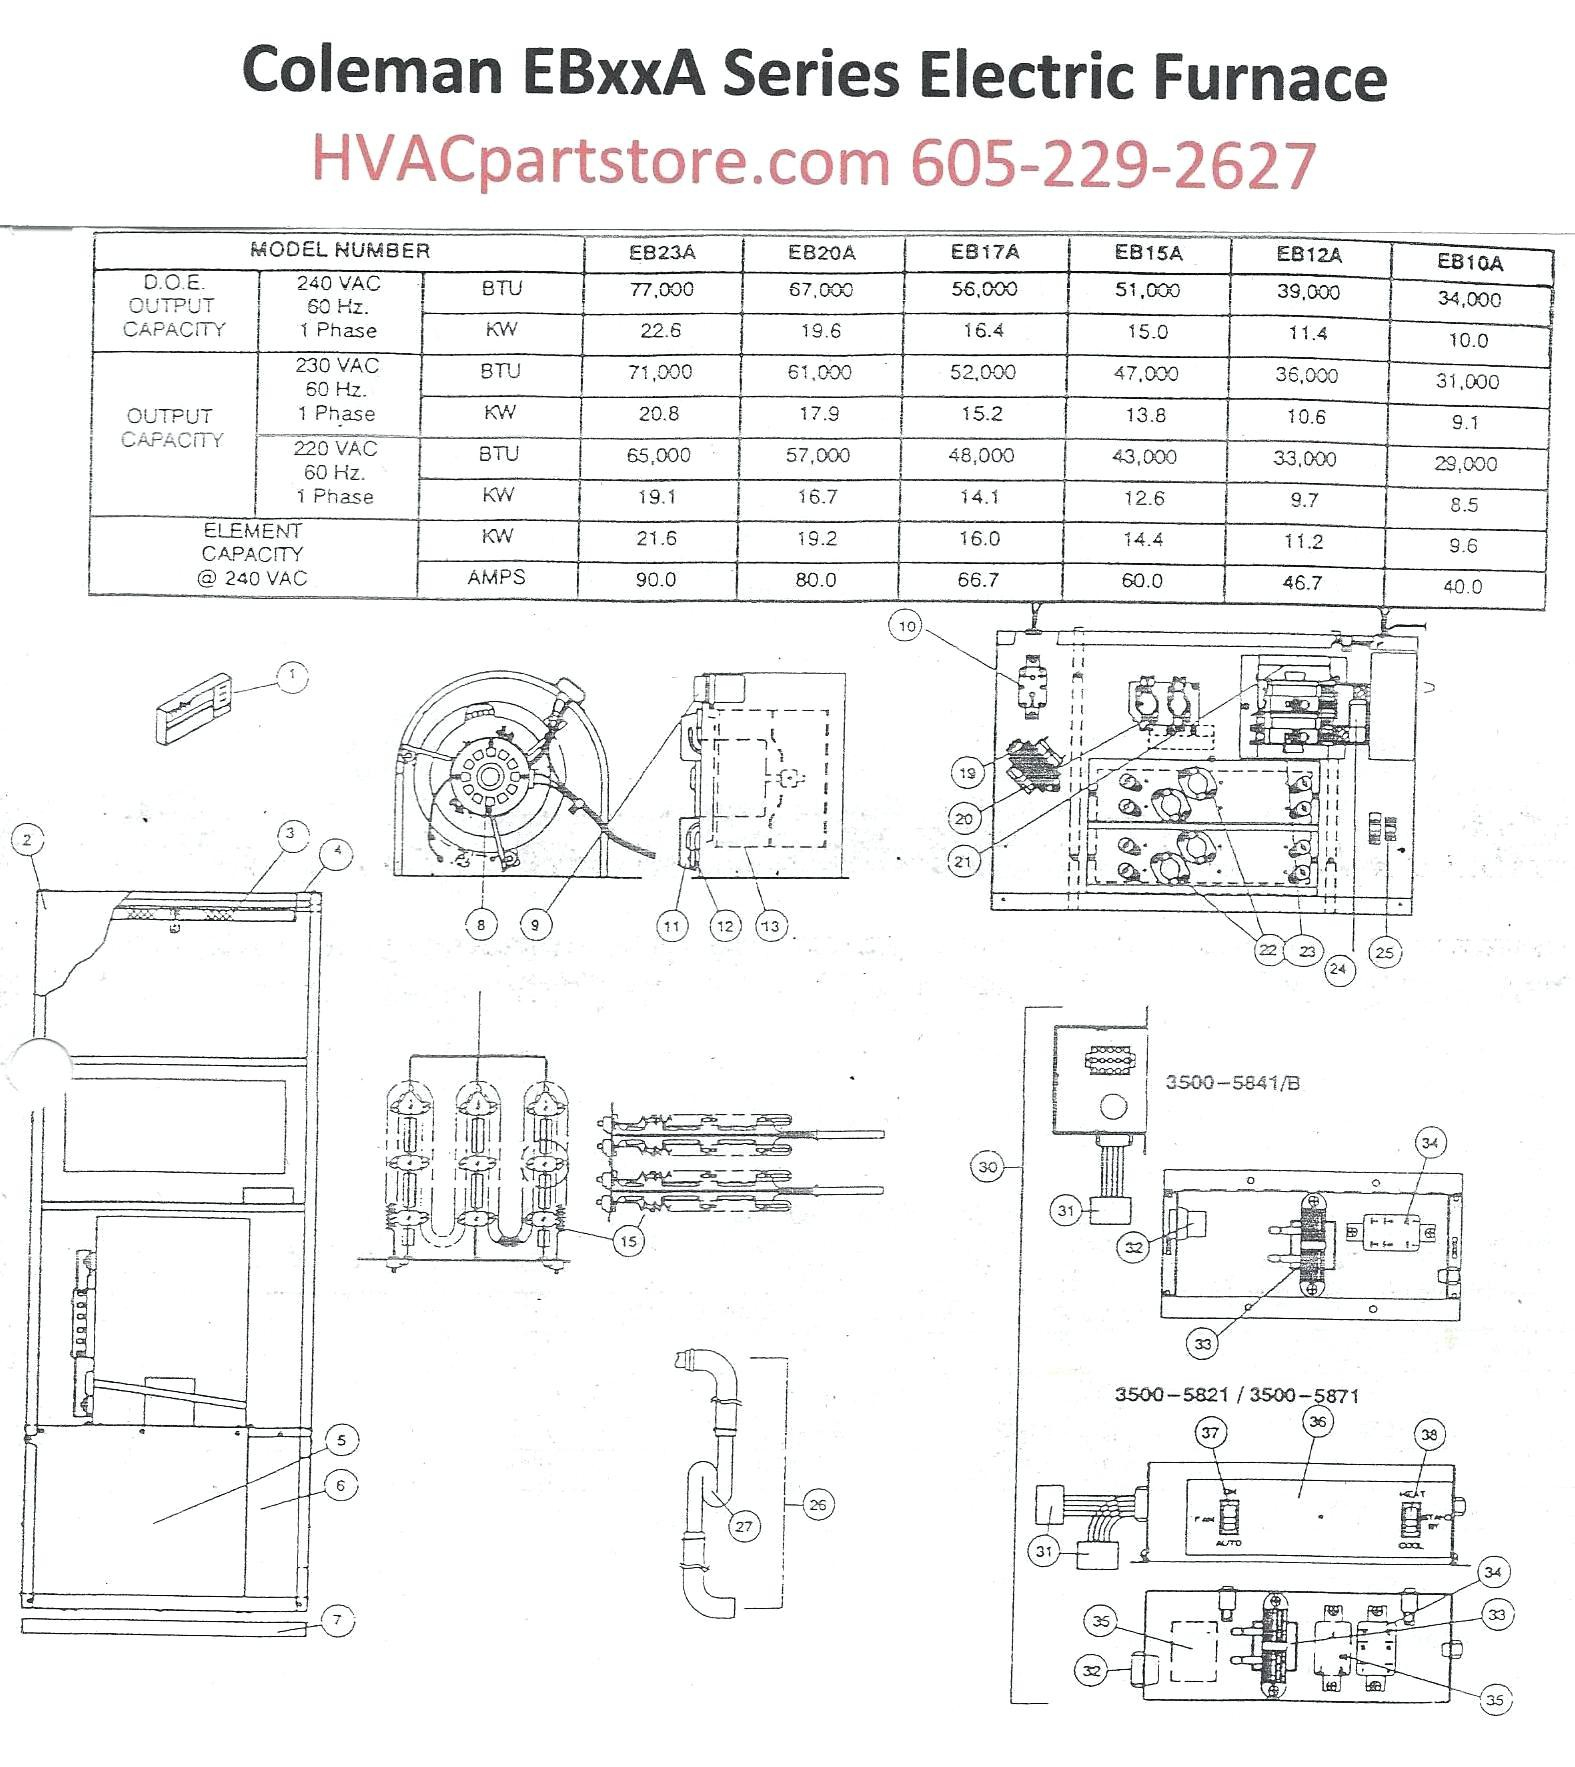 furnace fan motor wiring diagram Download-Furnace Blower Motor Wiring Diagram Unique Beautiful York 96 2 Stage And 4-c